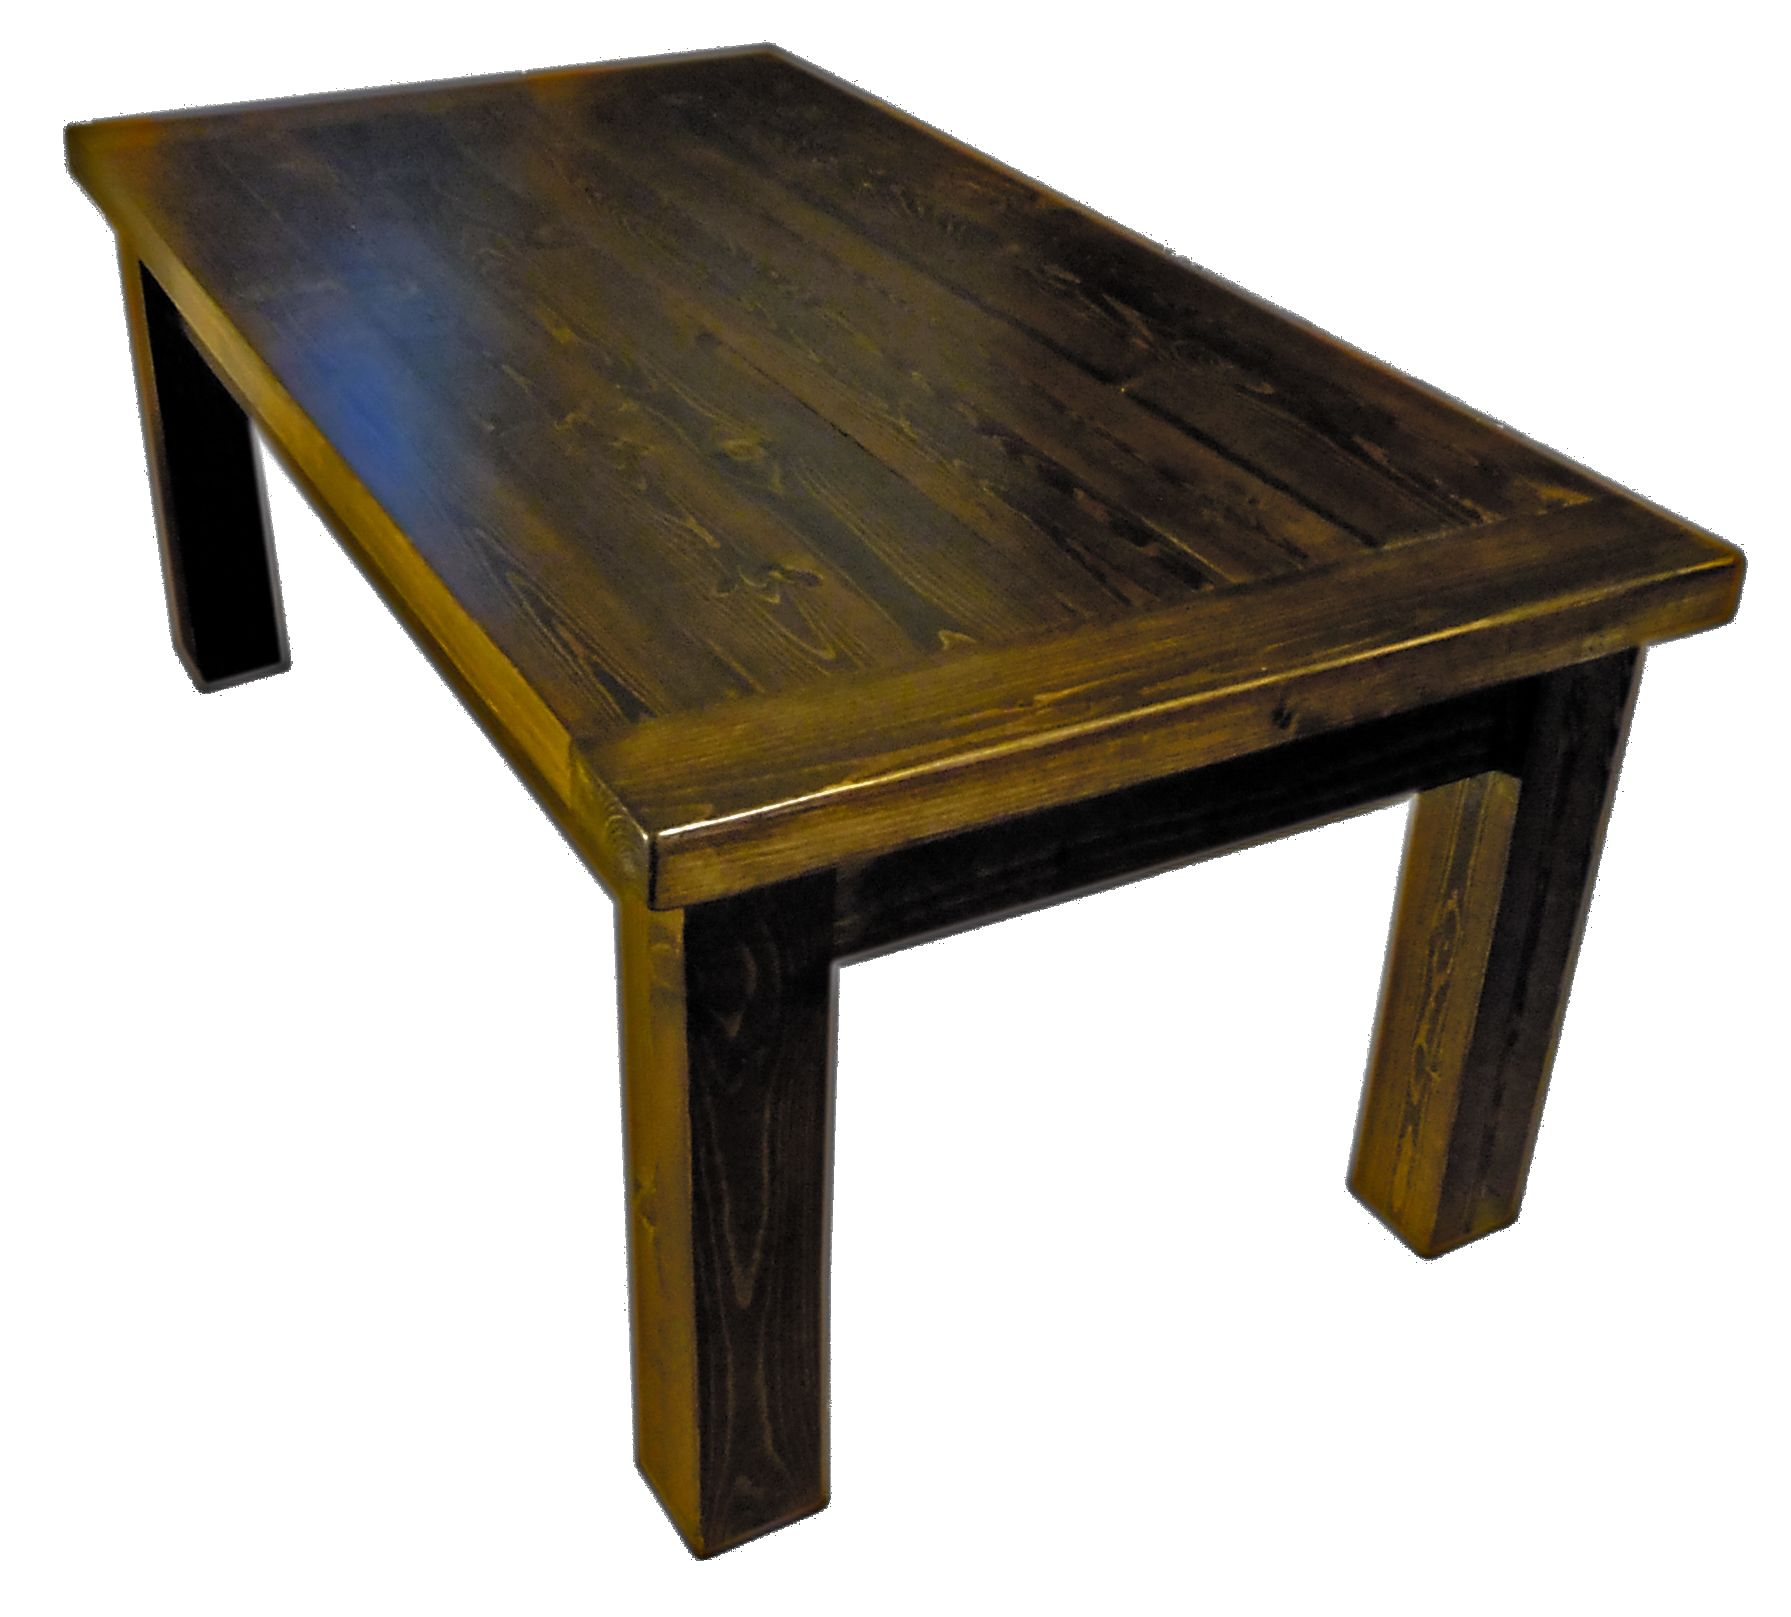 Awesome Rustic Planked Coffee Table Constructed From Custom Ripped 2x6 SPF (spruce,  Pine,